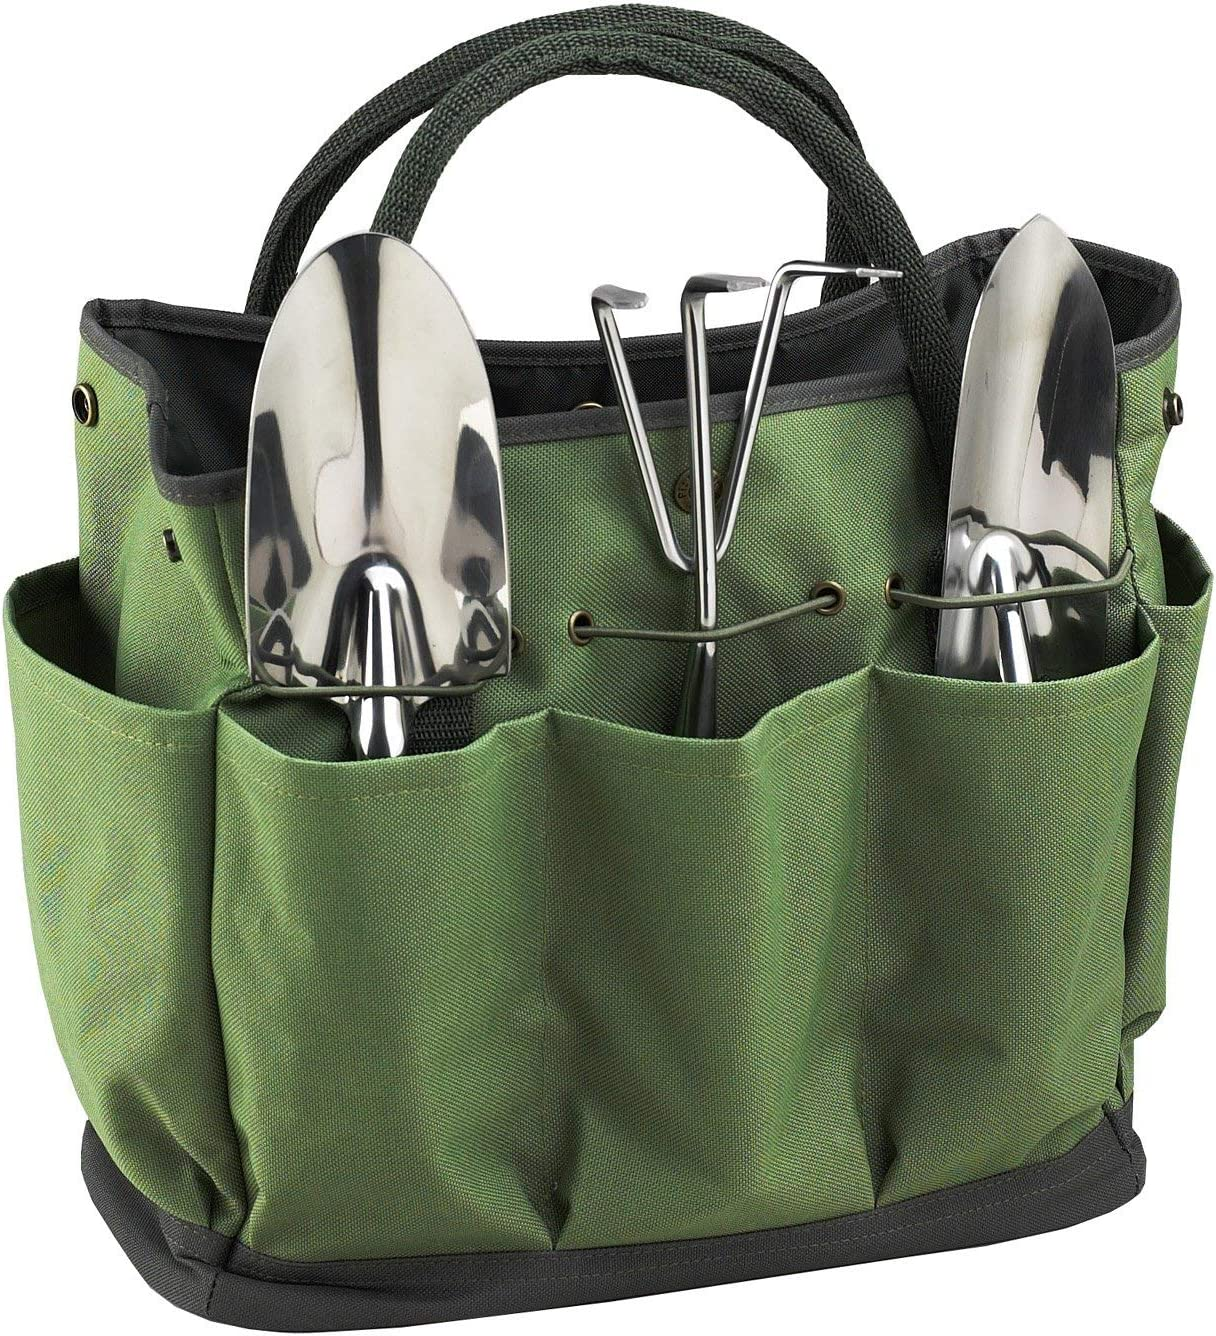 Garden Tote Bag Gardening Tool Bags Storage Tote Bag Outdoor Garden Tool Kit Tools Holder Bag Compact Hand Tool Organizer Gardeners Storage Bag Pouches Lawn Yard Plant Tool Carrier Tote Bag Oxford